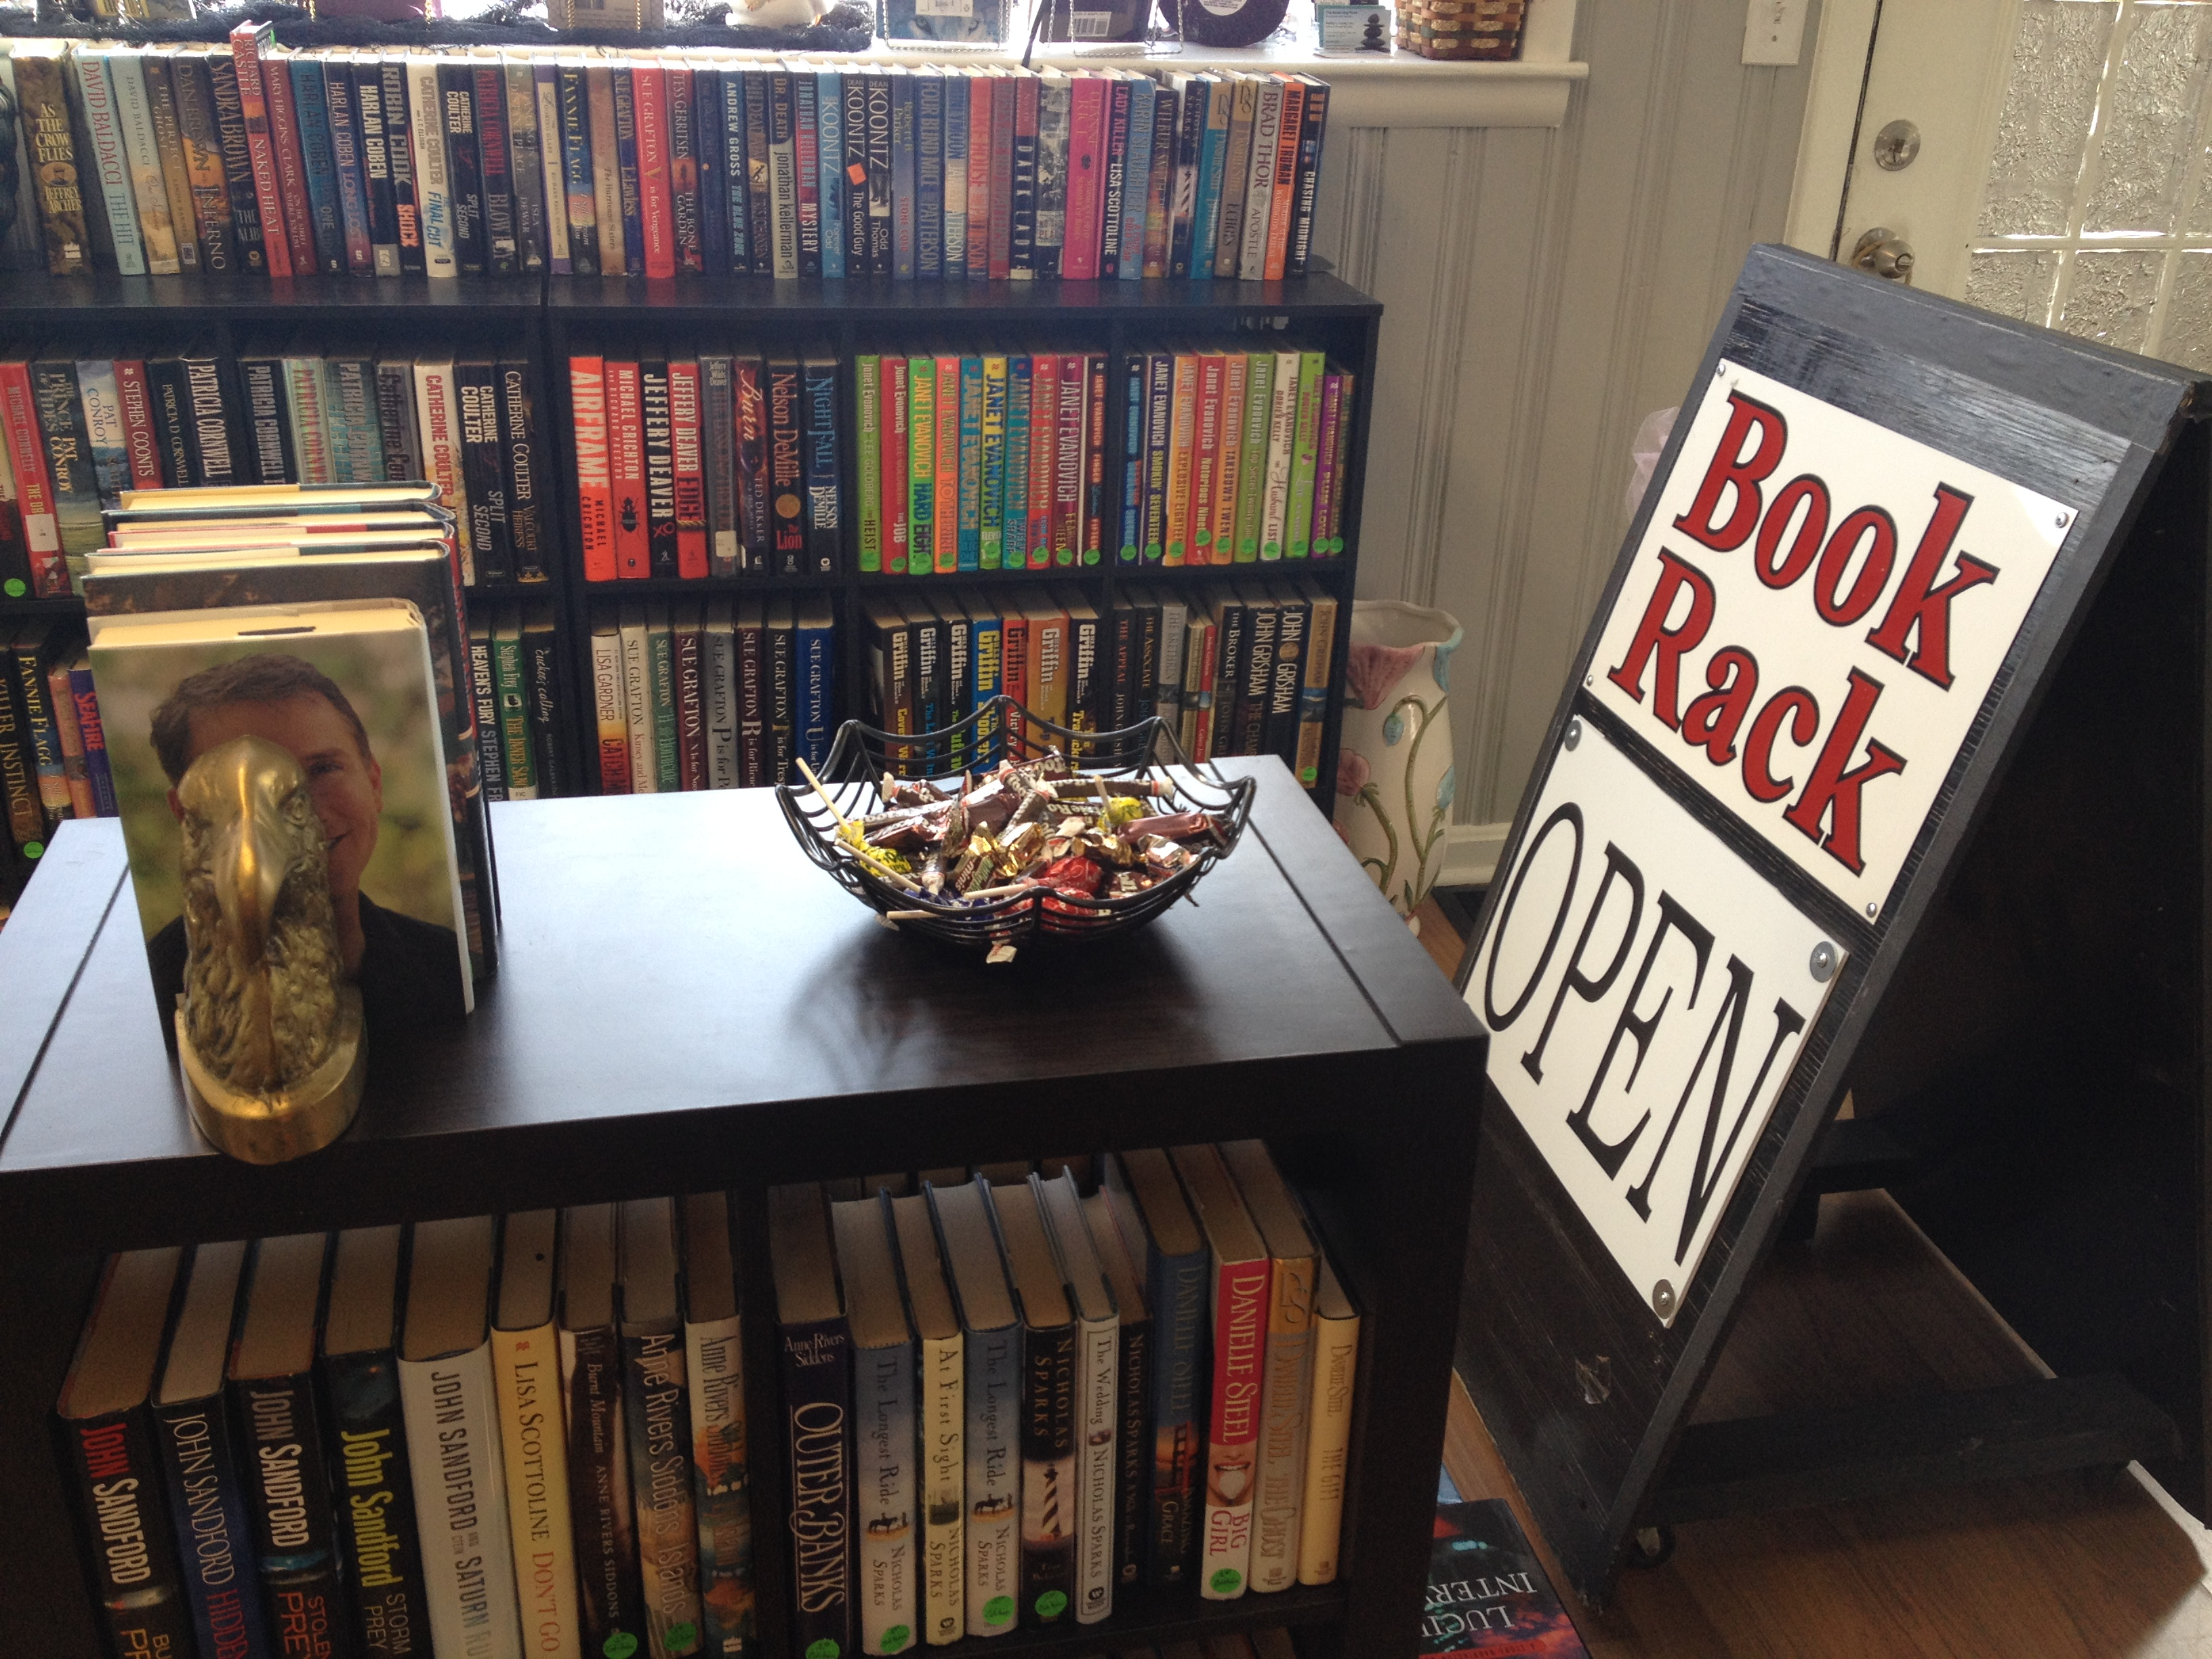 DeDe's Book Rack fosters love of books in community